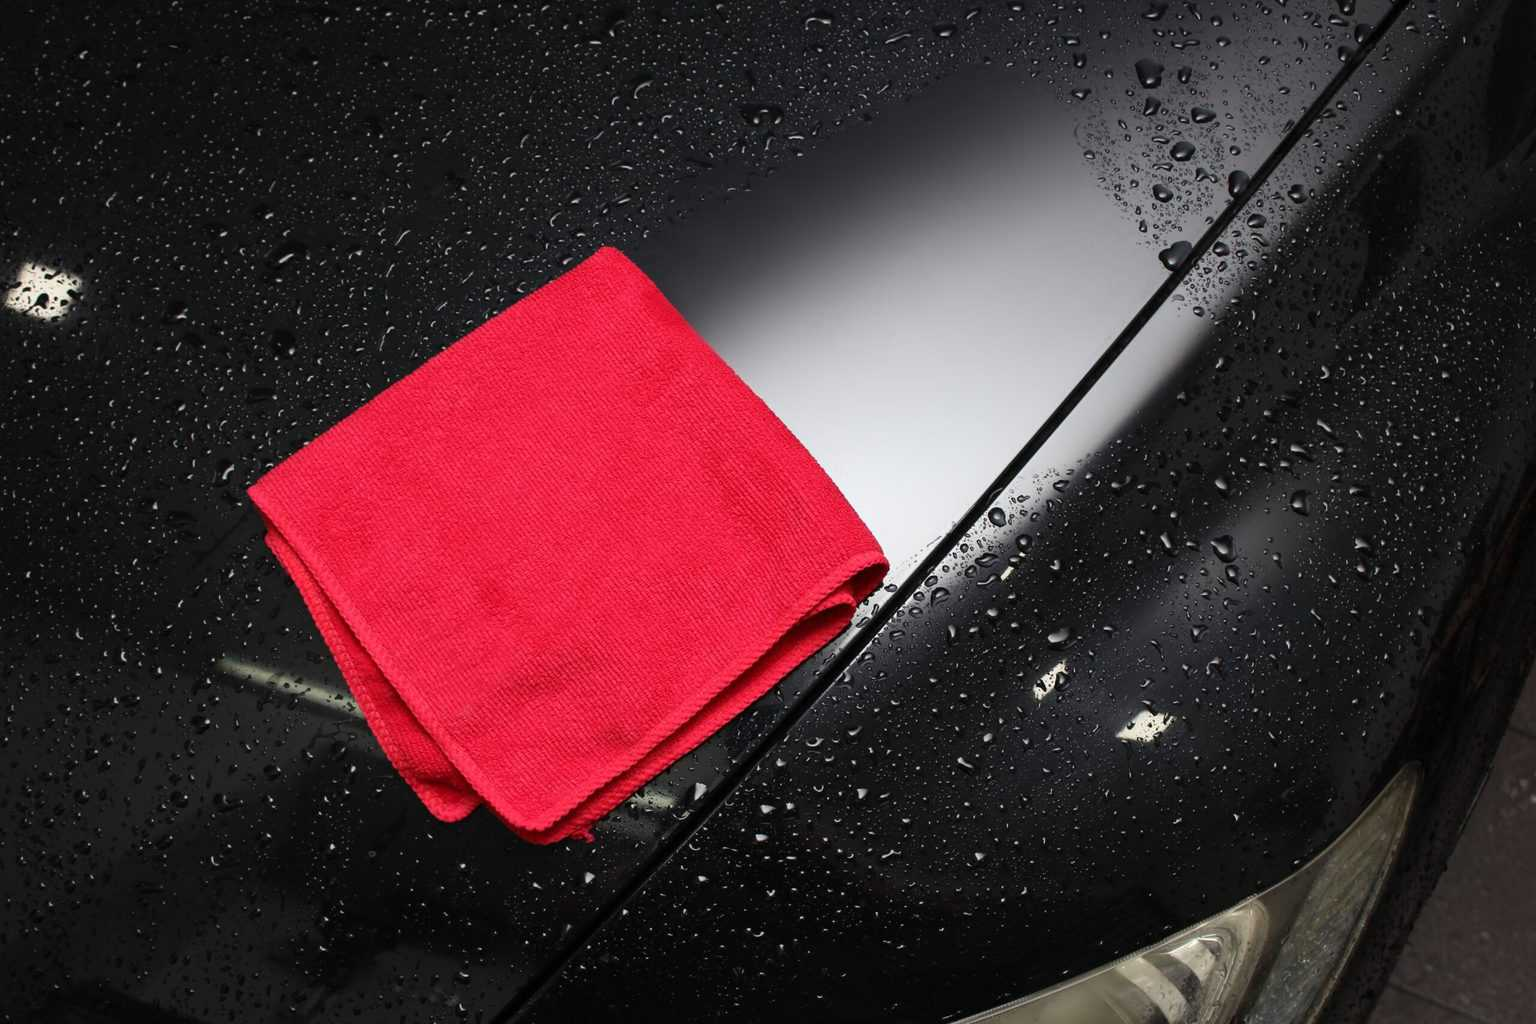 A shiny car wiped with a red cloth